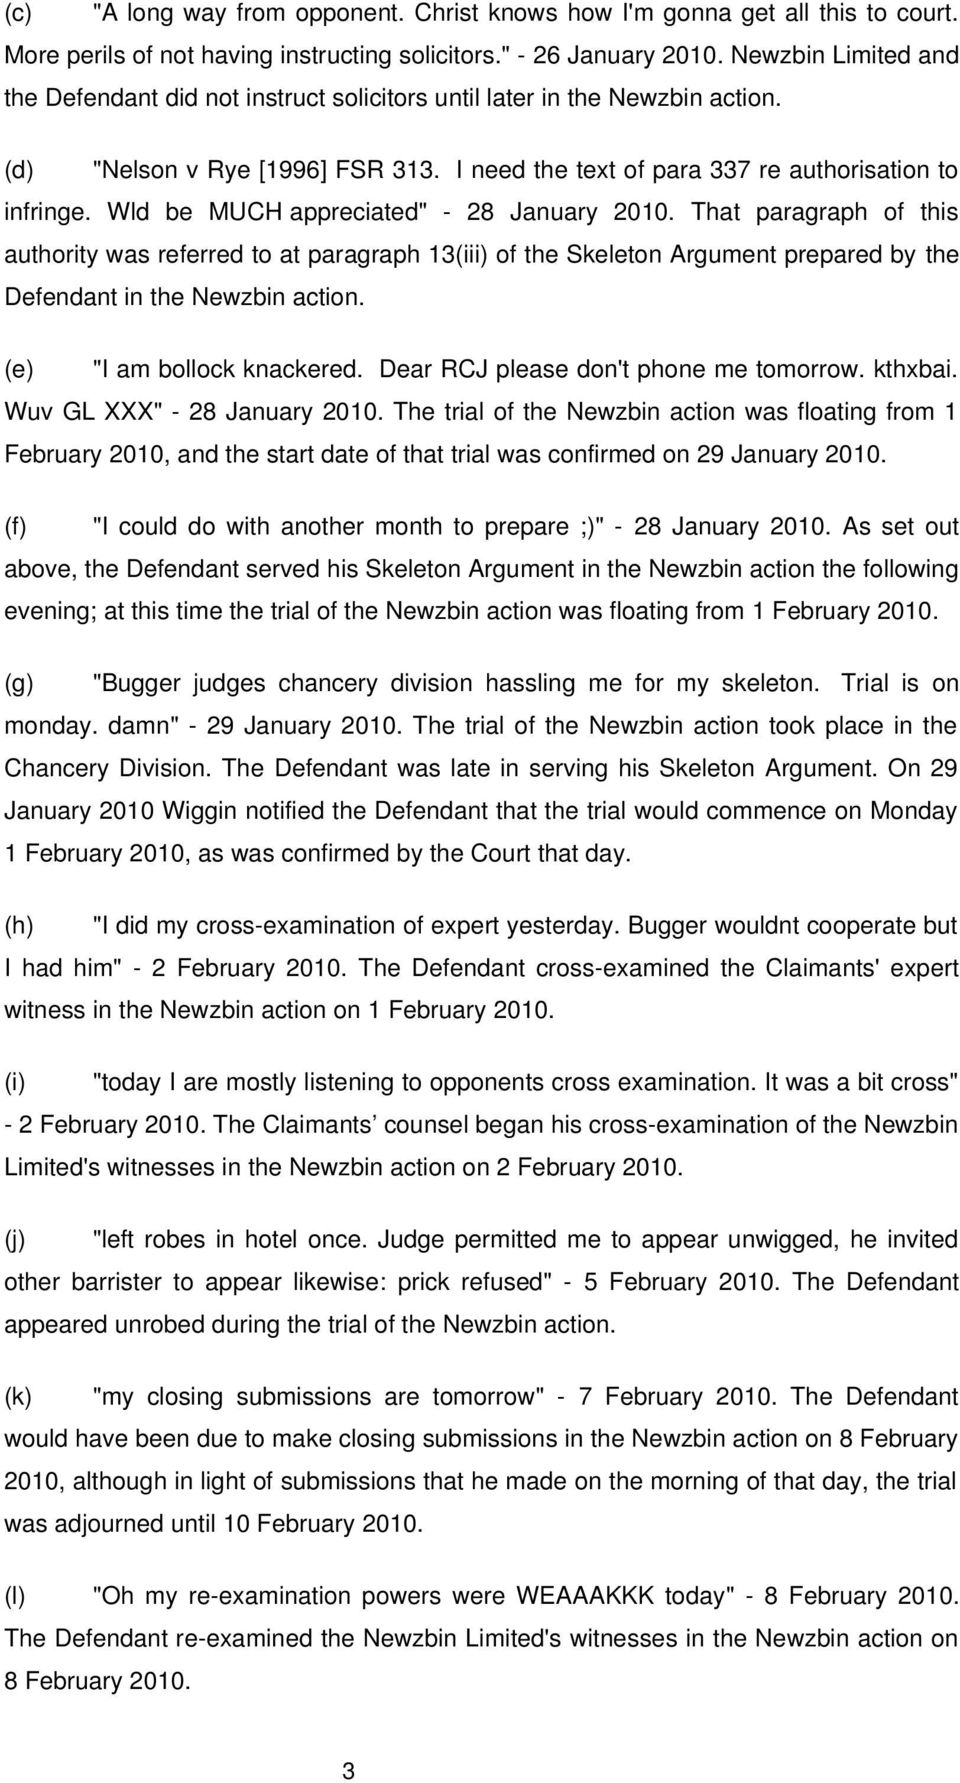 "Wld be MUCH appreciated"" - 28 January 2010. That paragraph of this authority was referred to at paragraph 13(iii) of the Skeleton Argument prepared by the Defendant in the Newzbin action."